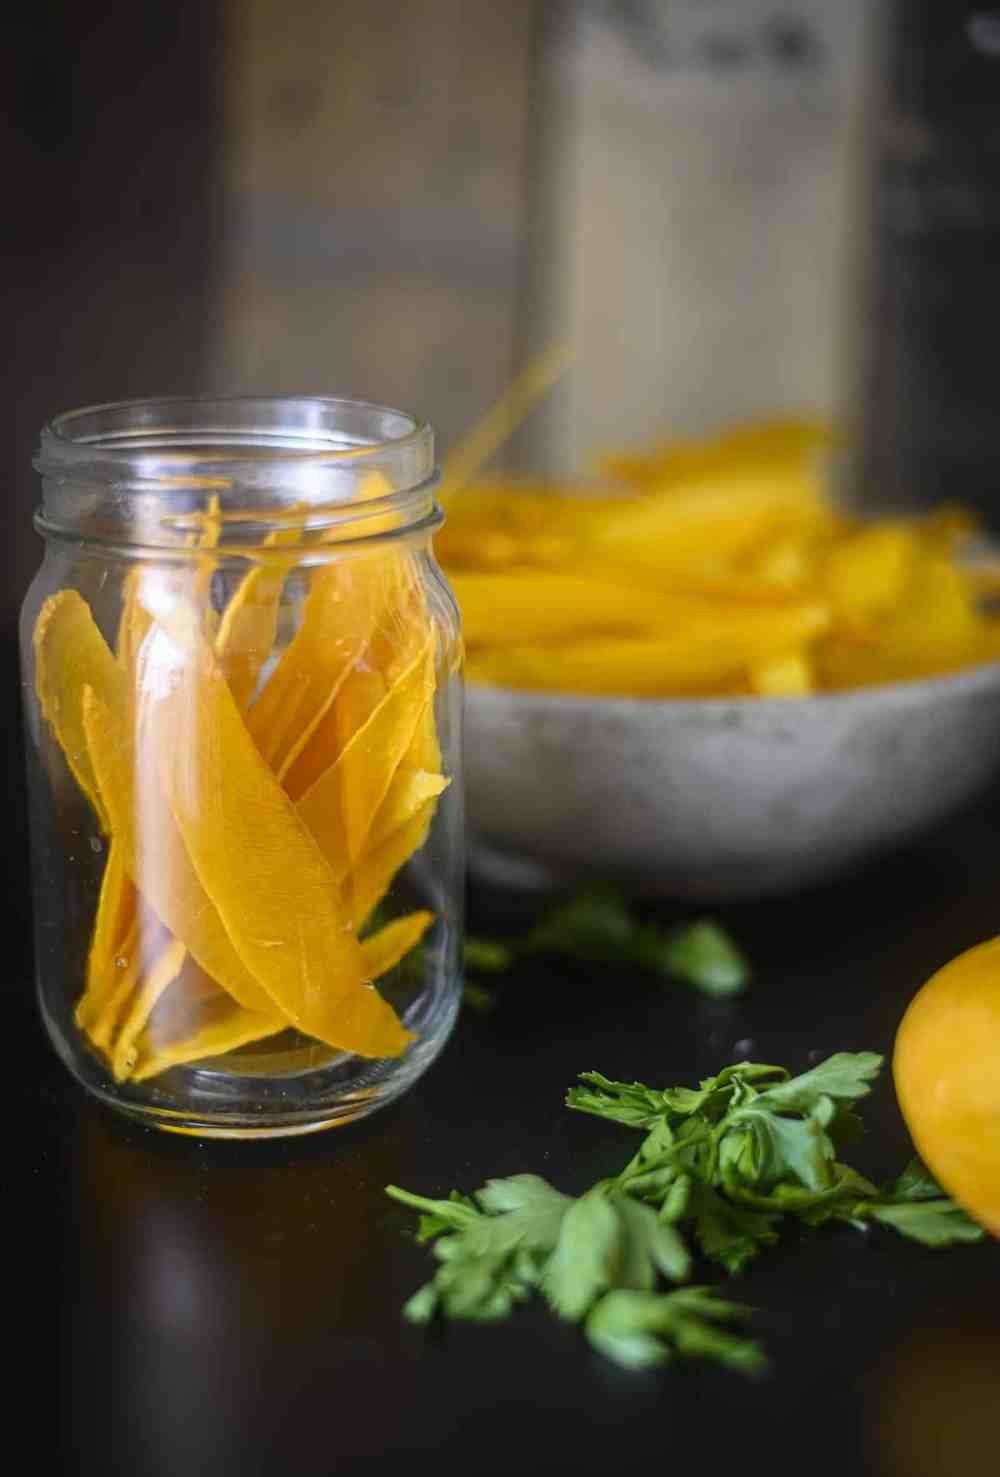 Mango chips in a glass jar on table